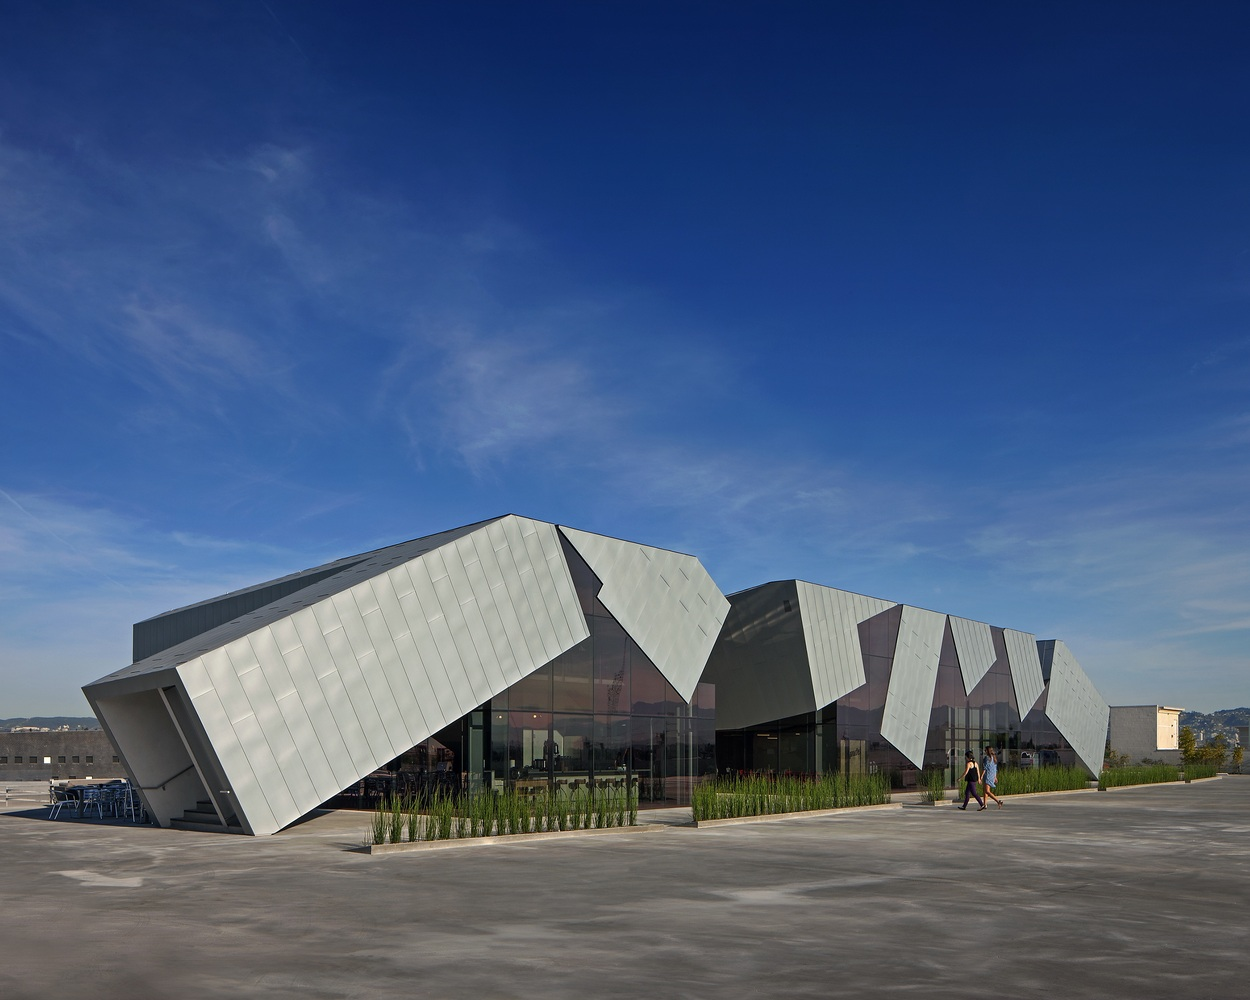 Exceptionnel AIA Names 18 Projects As Best New Architecture In US,Pterodactyl / Eric  Owen Moss